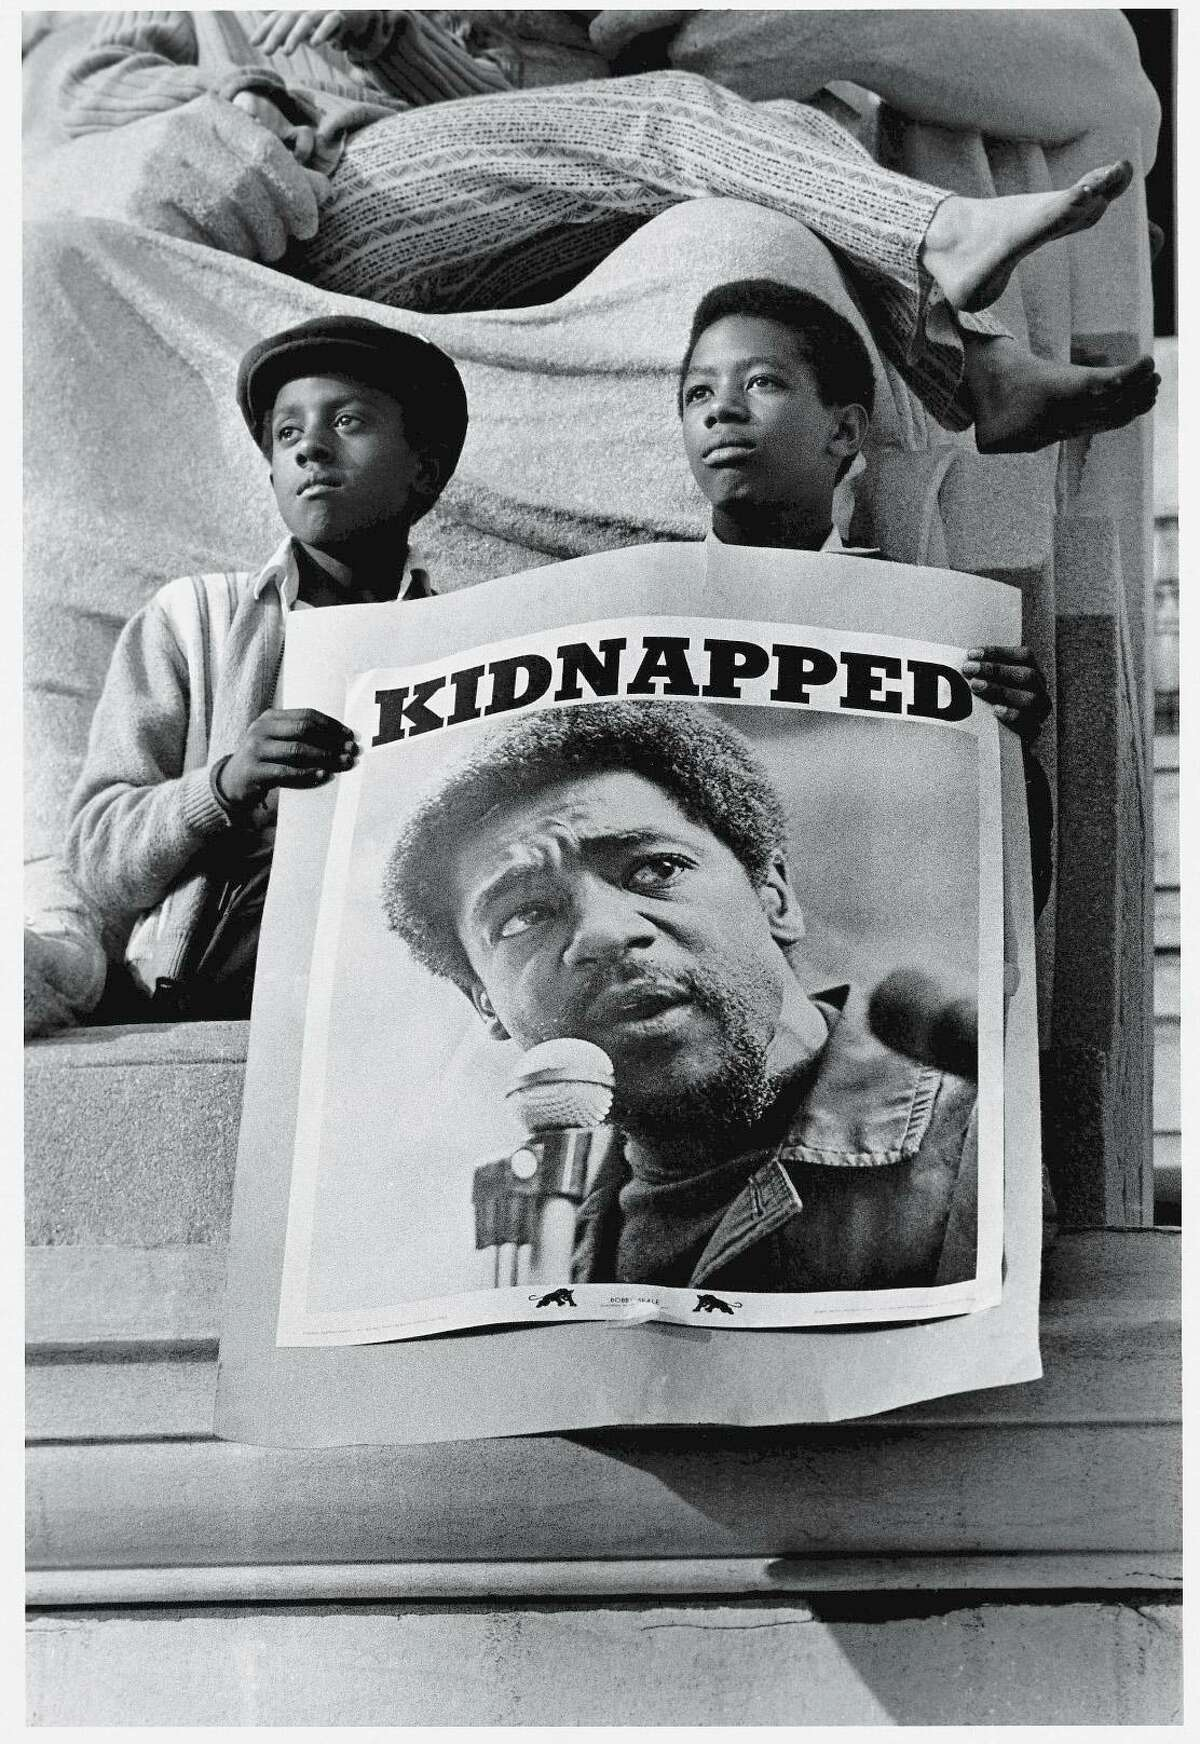 """At a rally in support of the Black Panther Party, two young men hold poster of Panther leader Bobby Seale under the heading """"Kidnapped,"""" in New Haven May 1, 1970. The poster refers to the trial of the New Haven Nine, of which Seale was one, which had just begun."""